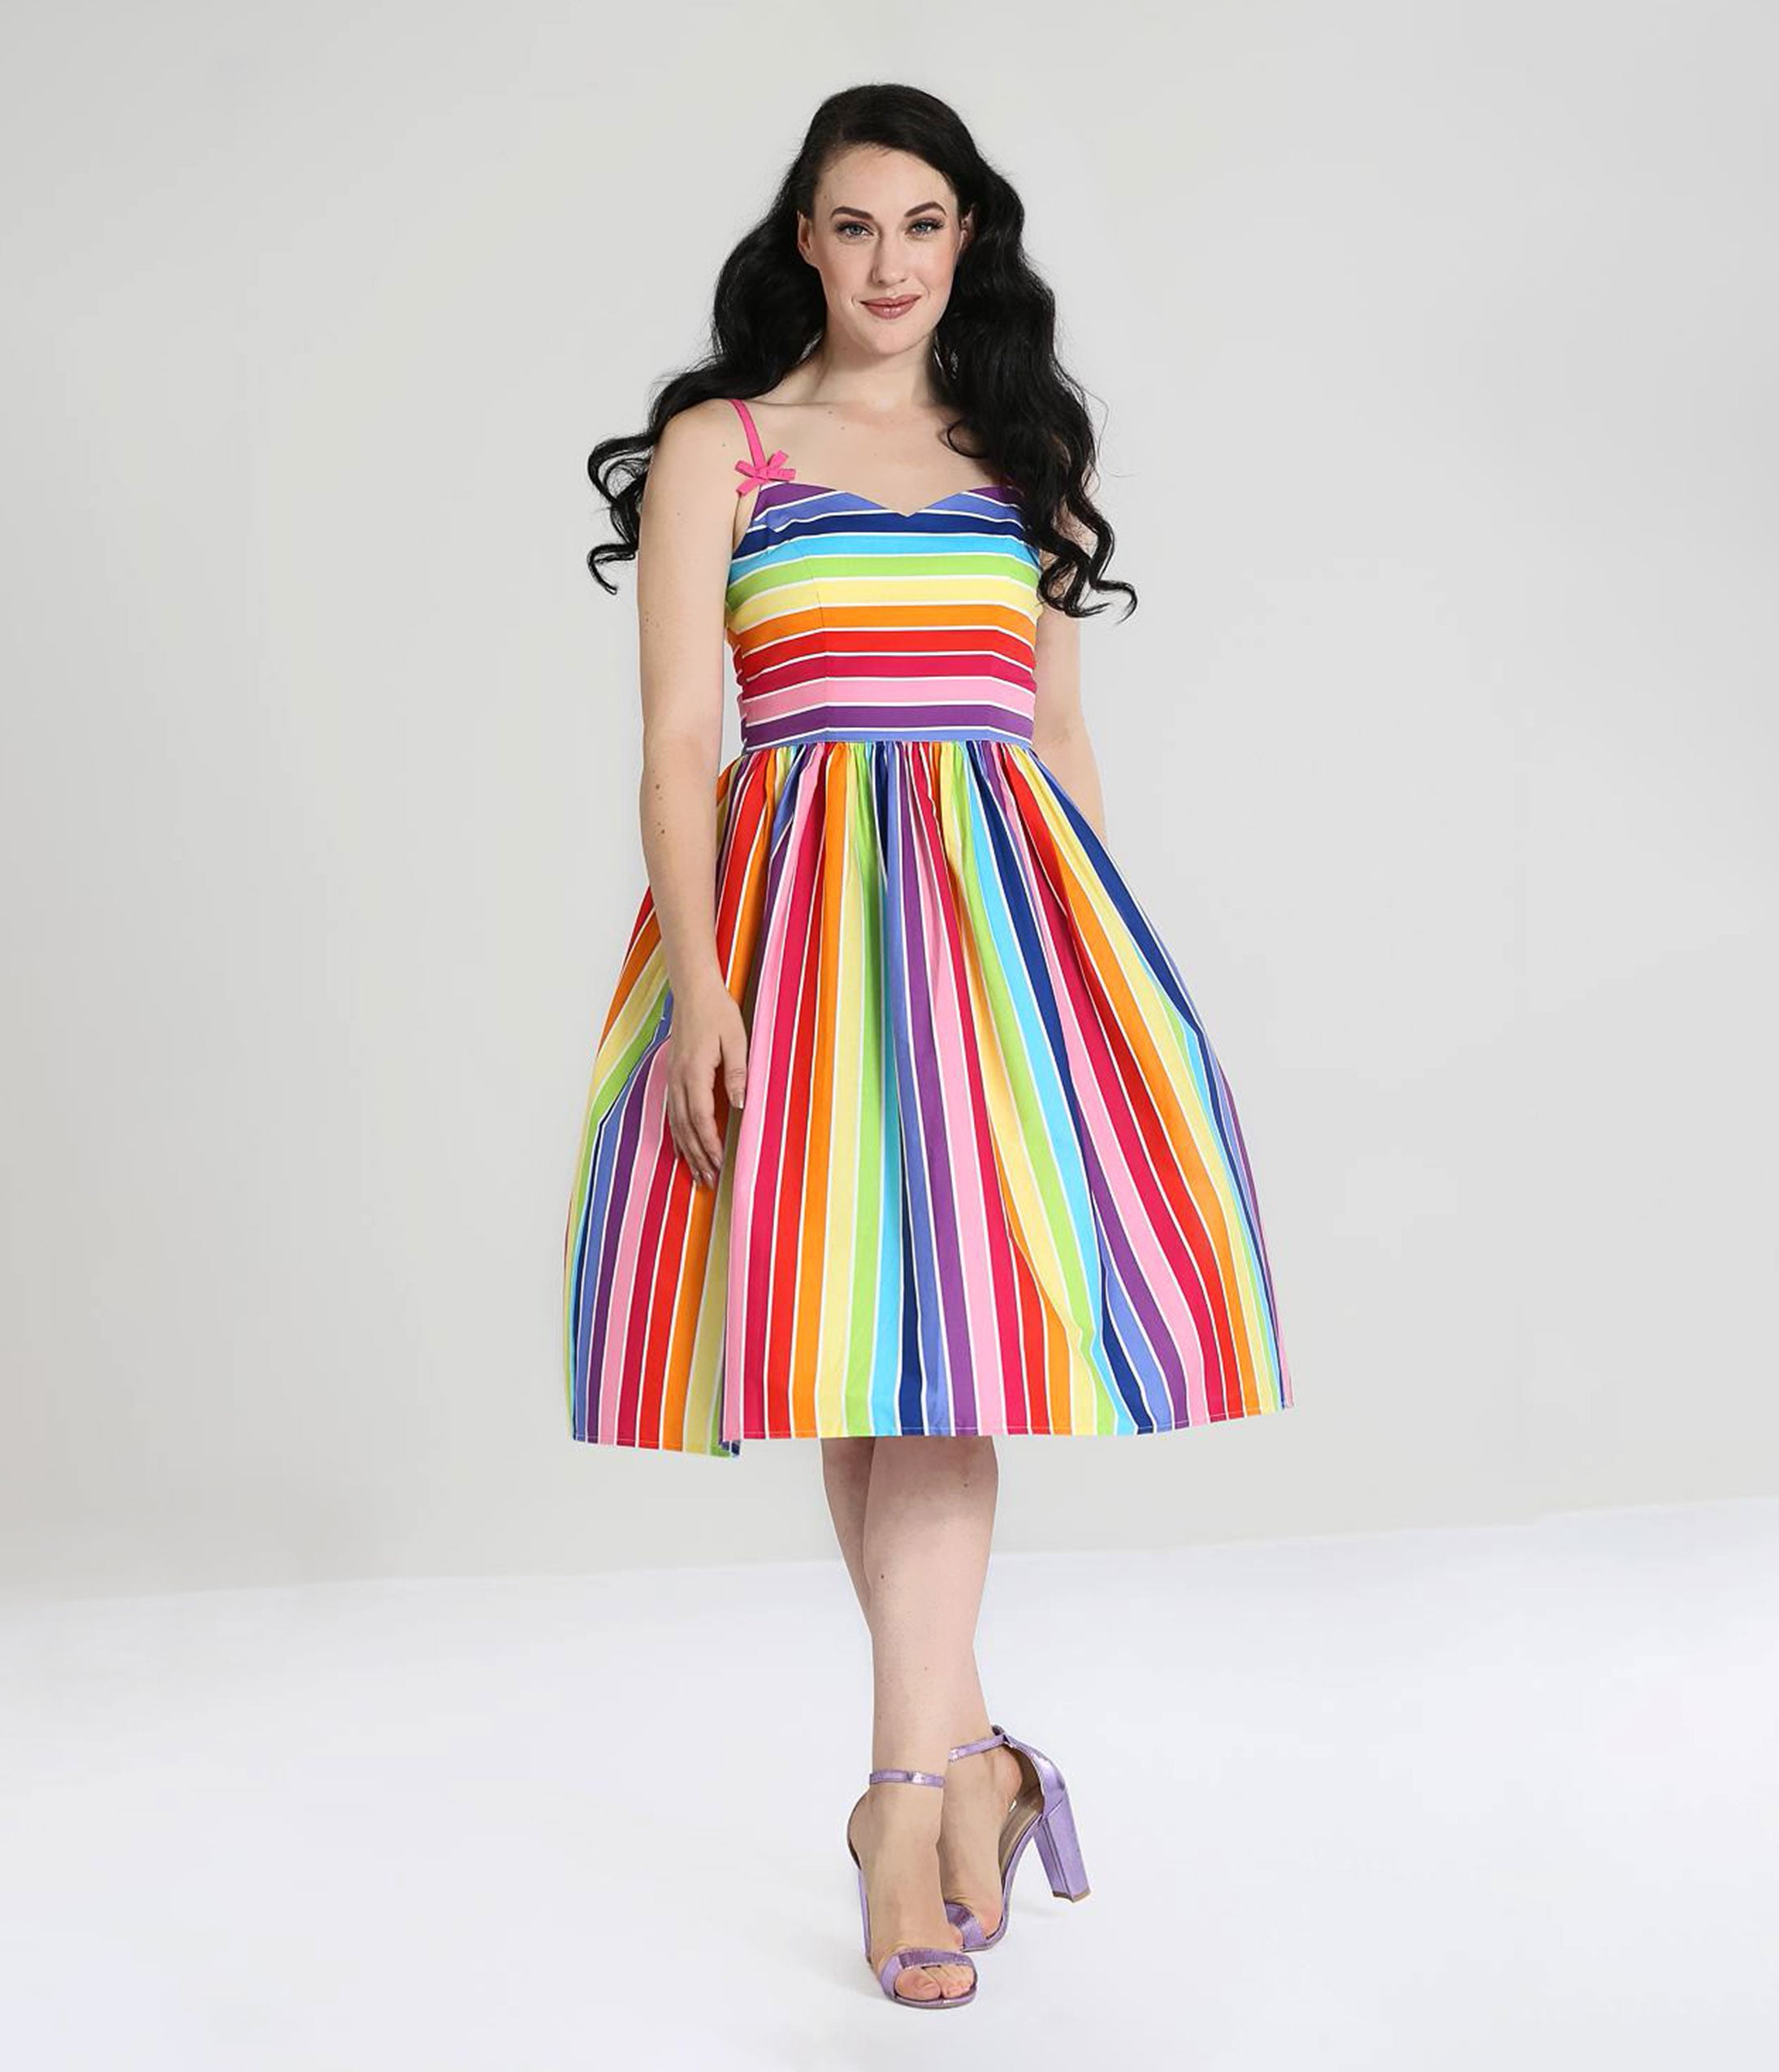 1950s Dresses, 50s Dresses | 1950s Style Dresses Hell Bunny 1950S Over The Rainbow Swing Dress $82.00 AT vintagedancer.com